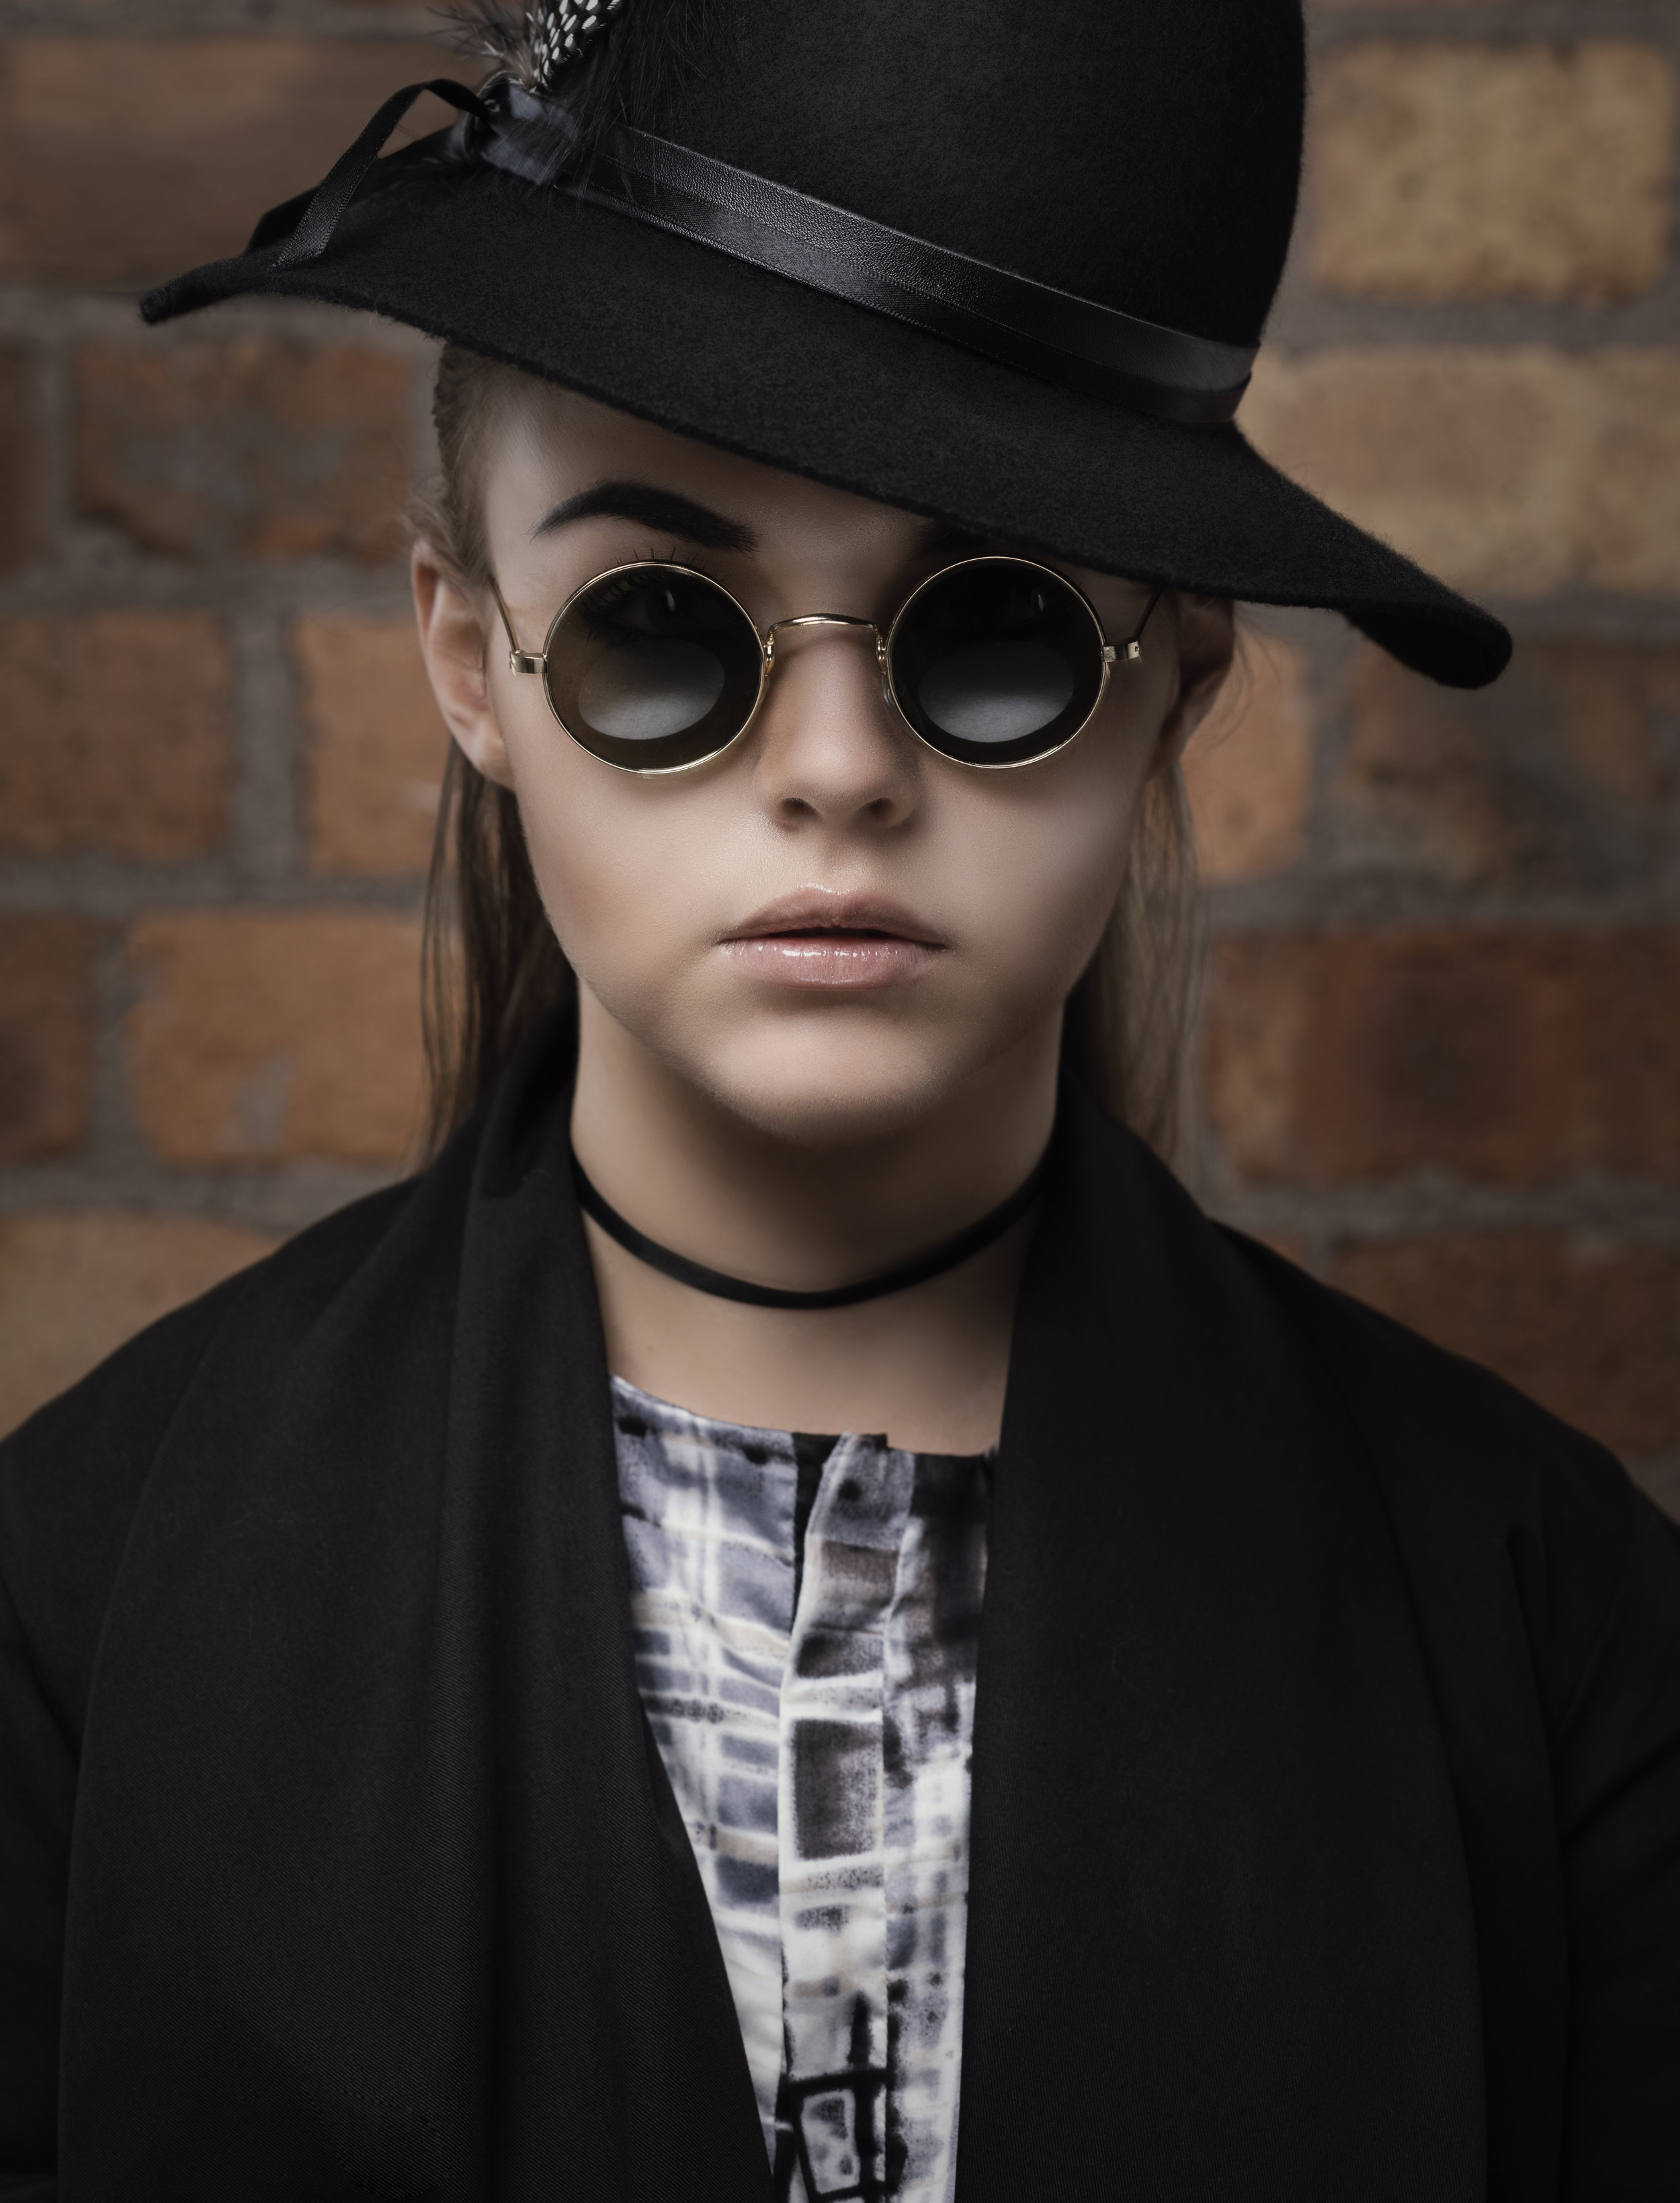 zaramia-ava-zaramiaava-leeds-fashion-designer-ethical-sustainable-glasses-versatile-drape-wrap-top-wrap-top-jacket-mio-black-white-grey-styling-hat-studio-womenswear-photoshoot-7